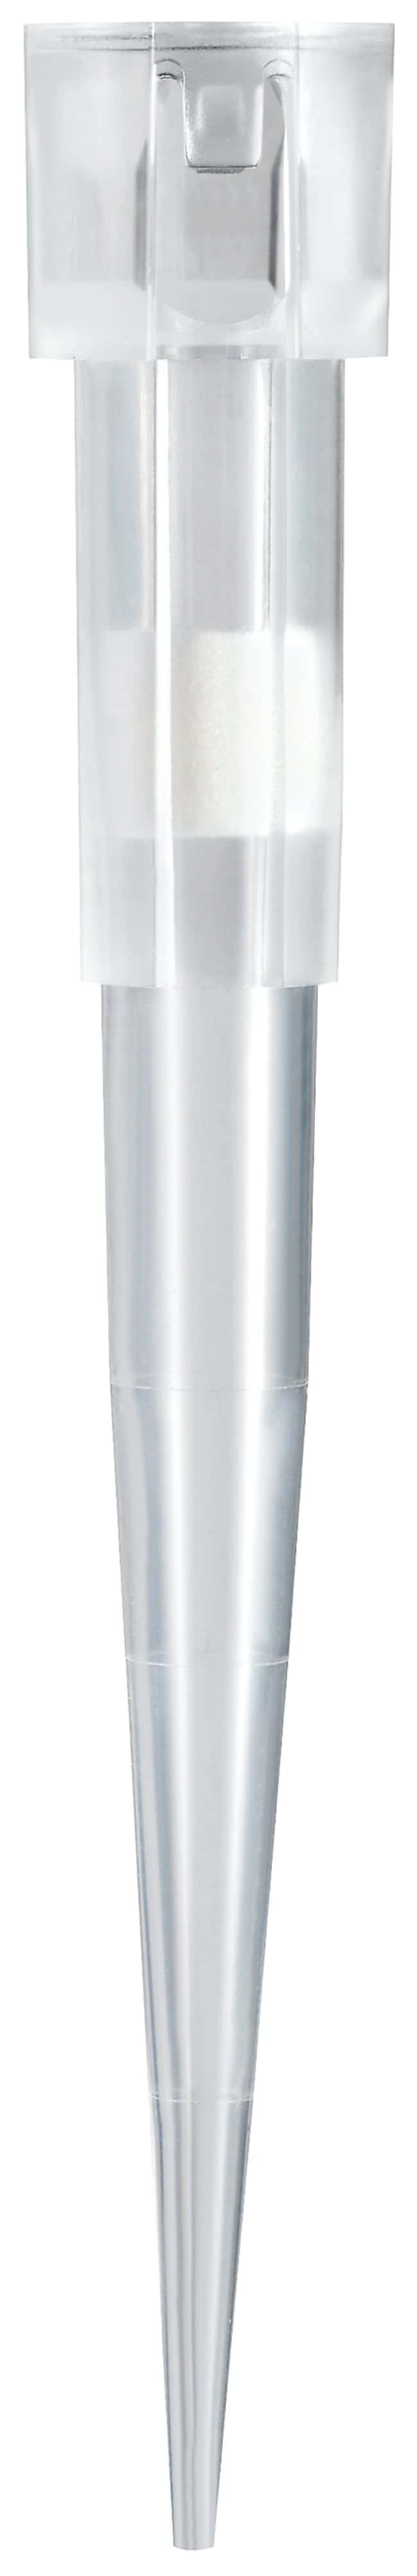 Thermo Scientific™ ClipTip™ Non-Filtered Pipette Tips (EU IVD/CE-marked)